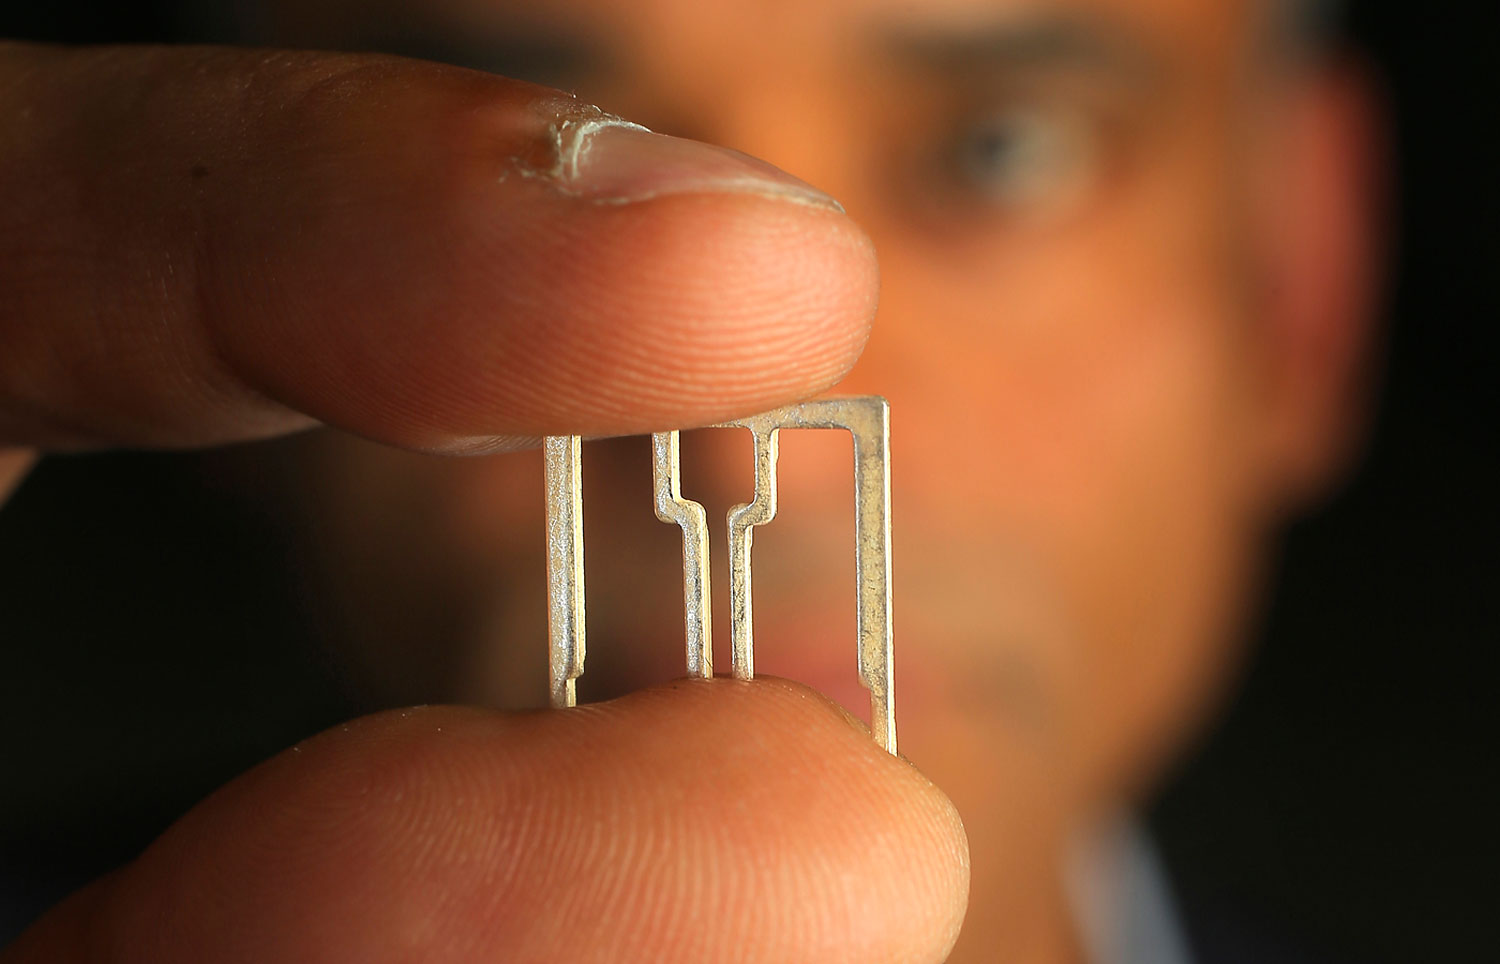 Aereo CEO Chet Kanojia holds one of the company's small antenna, May 22, 2014.